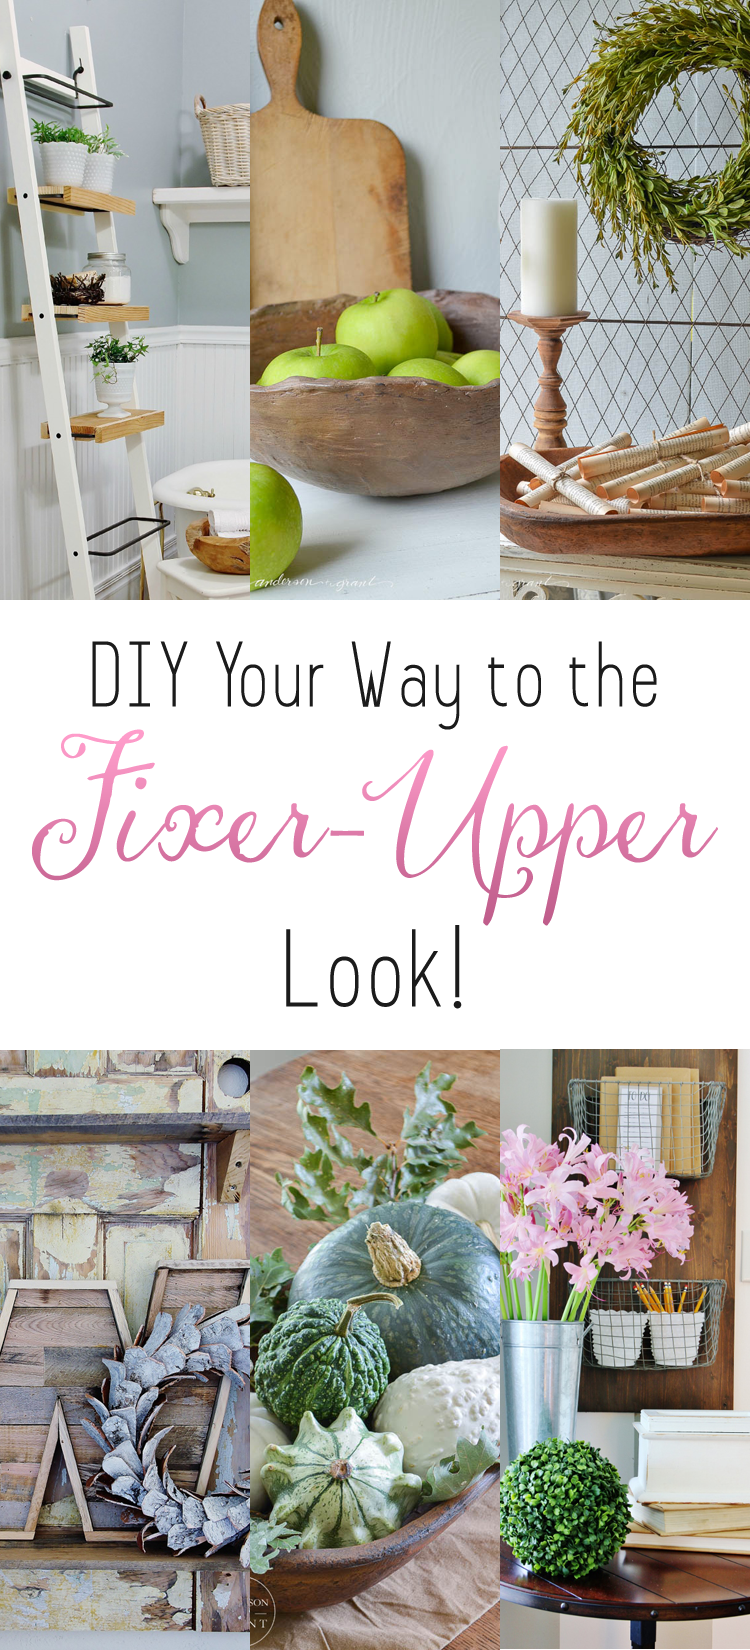 DIY Your Way to the Fixer-Upper Look | Farmhouse style, Decorating ...